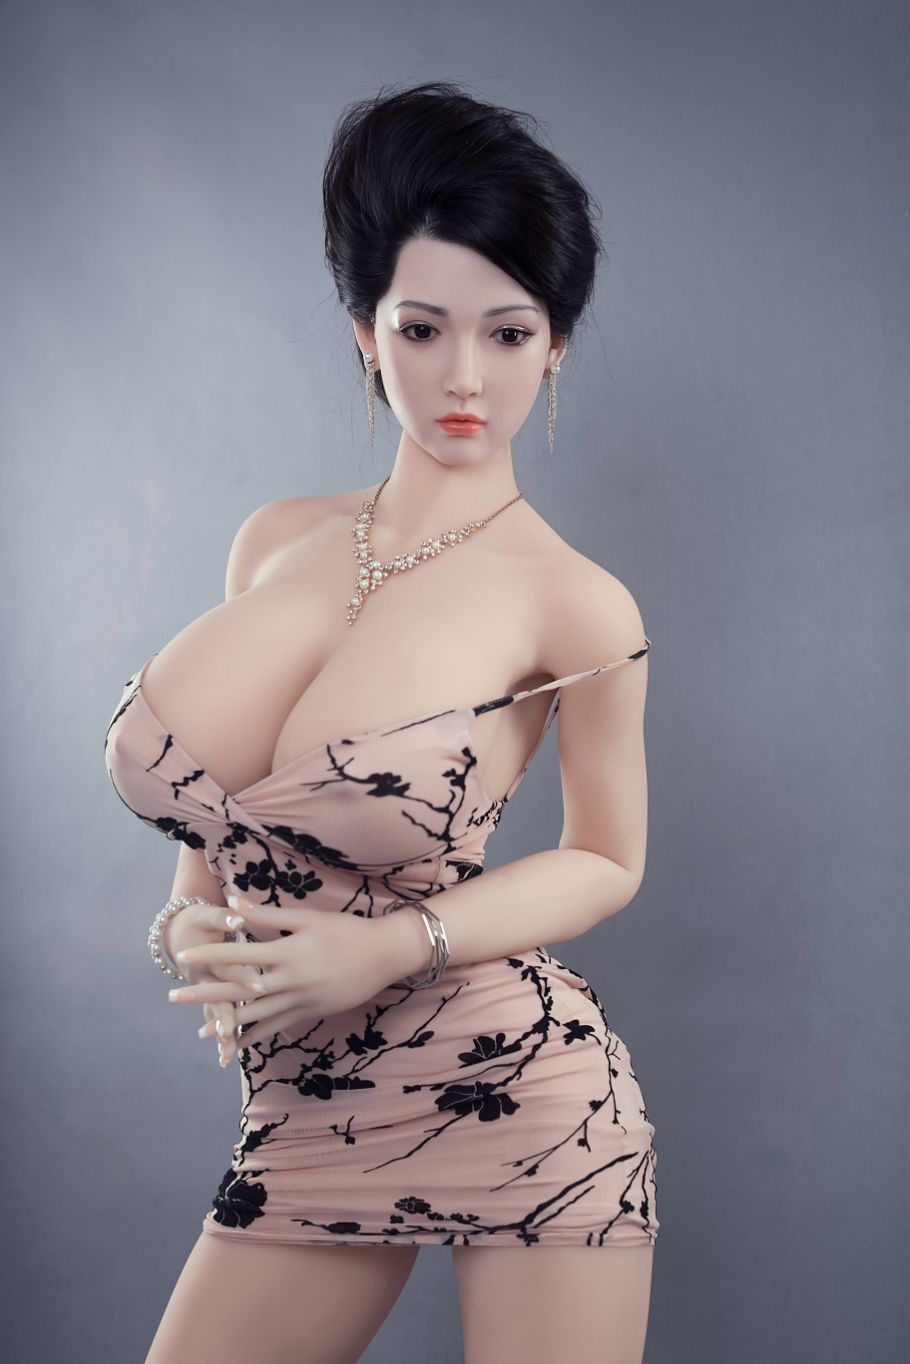 graciela 170cm af black hair big boobs athletic tpe sex doll(3)